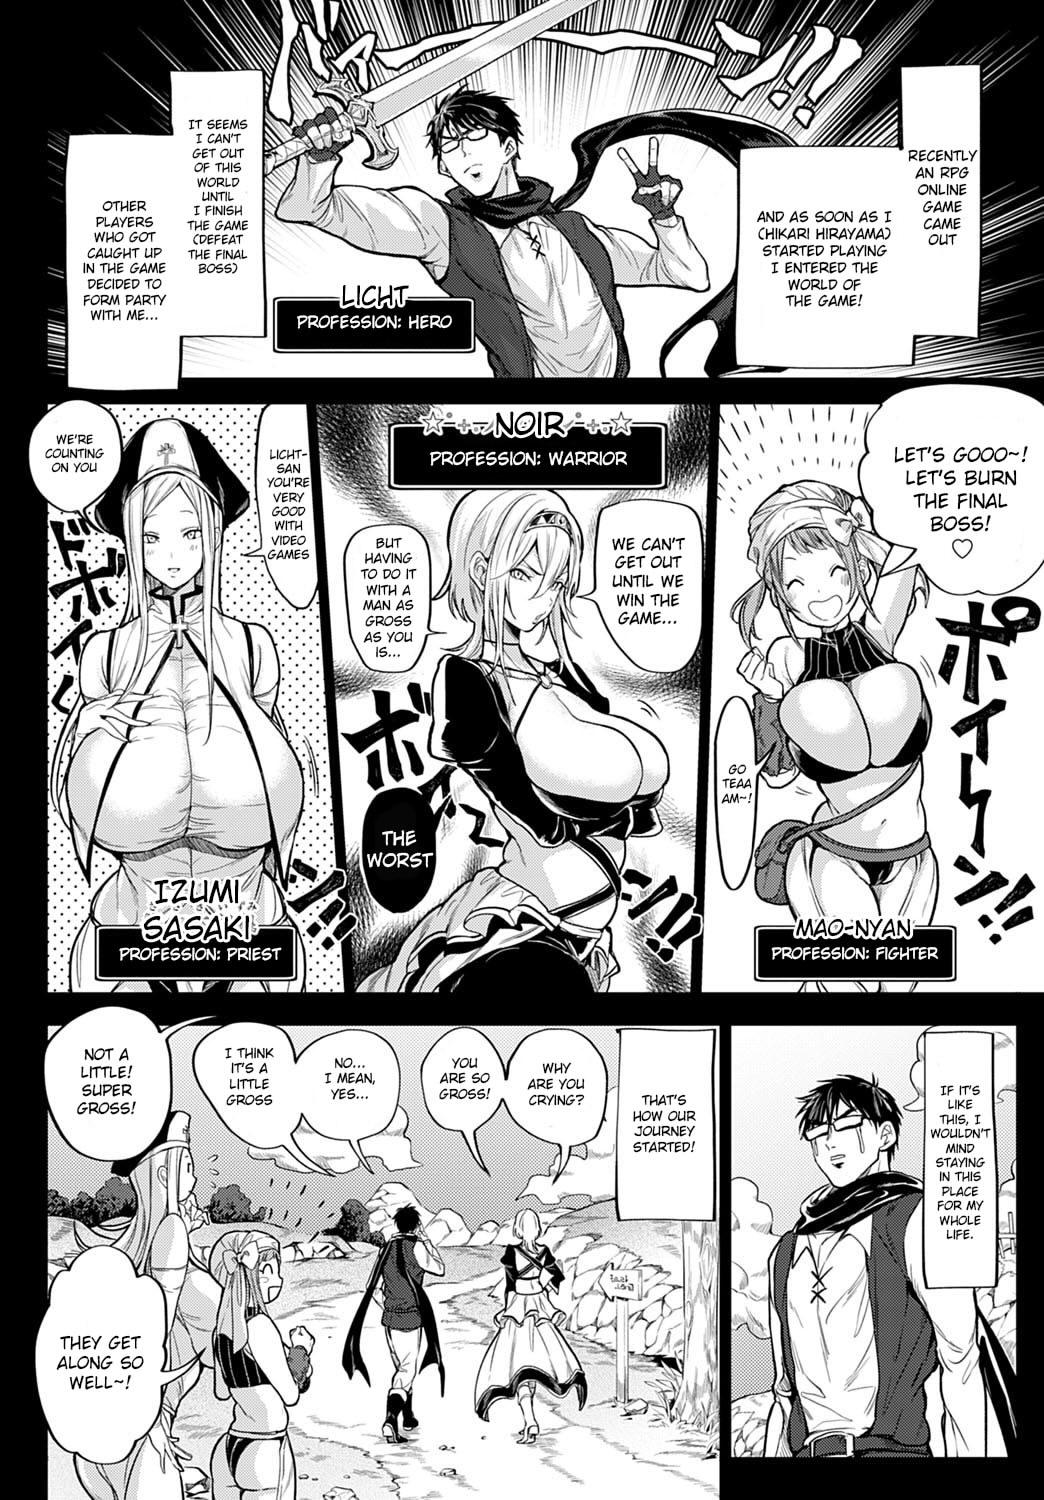 [Announ] Ore Saikyou Quest ~Isekai Harem no Sho~ | My story with my Harem in another world [English] [Digital] 1